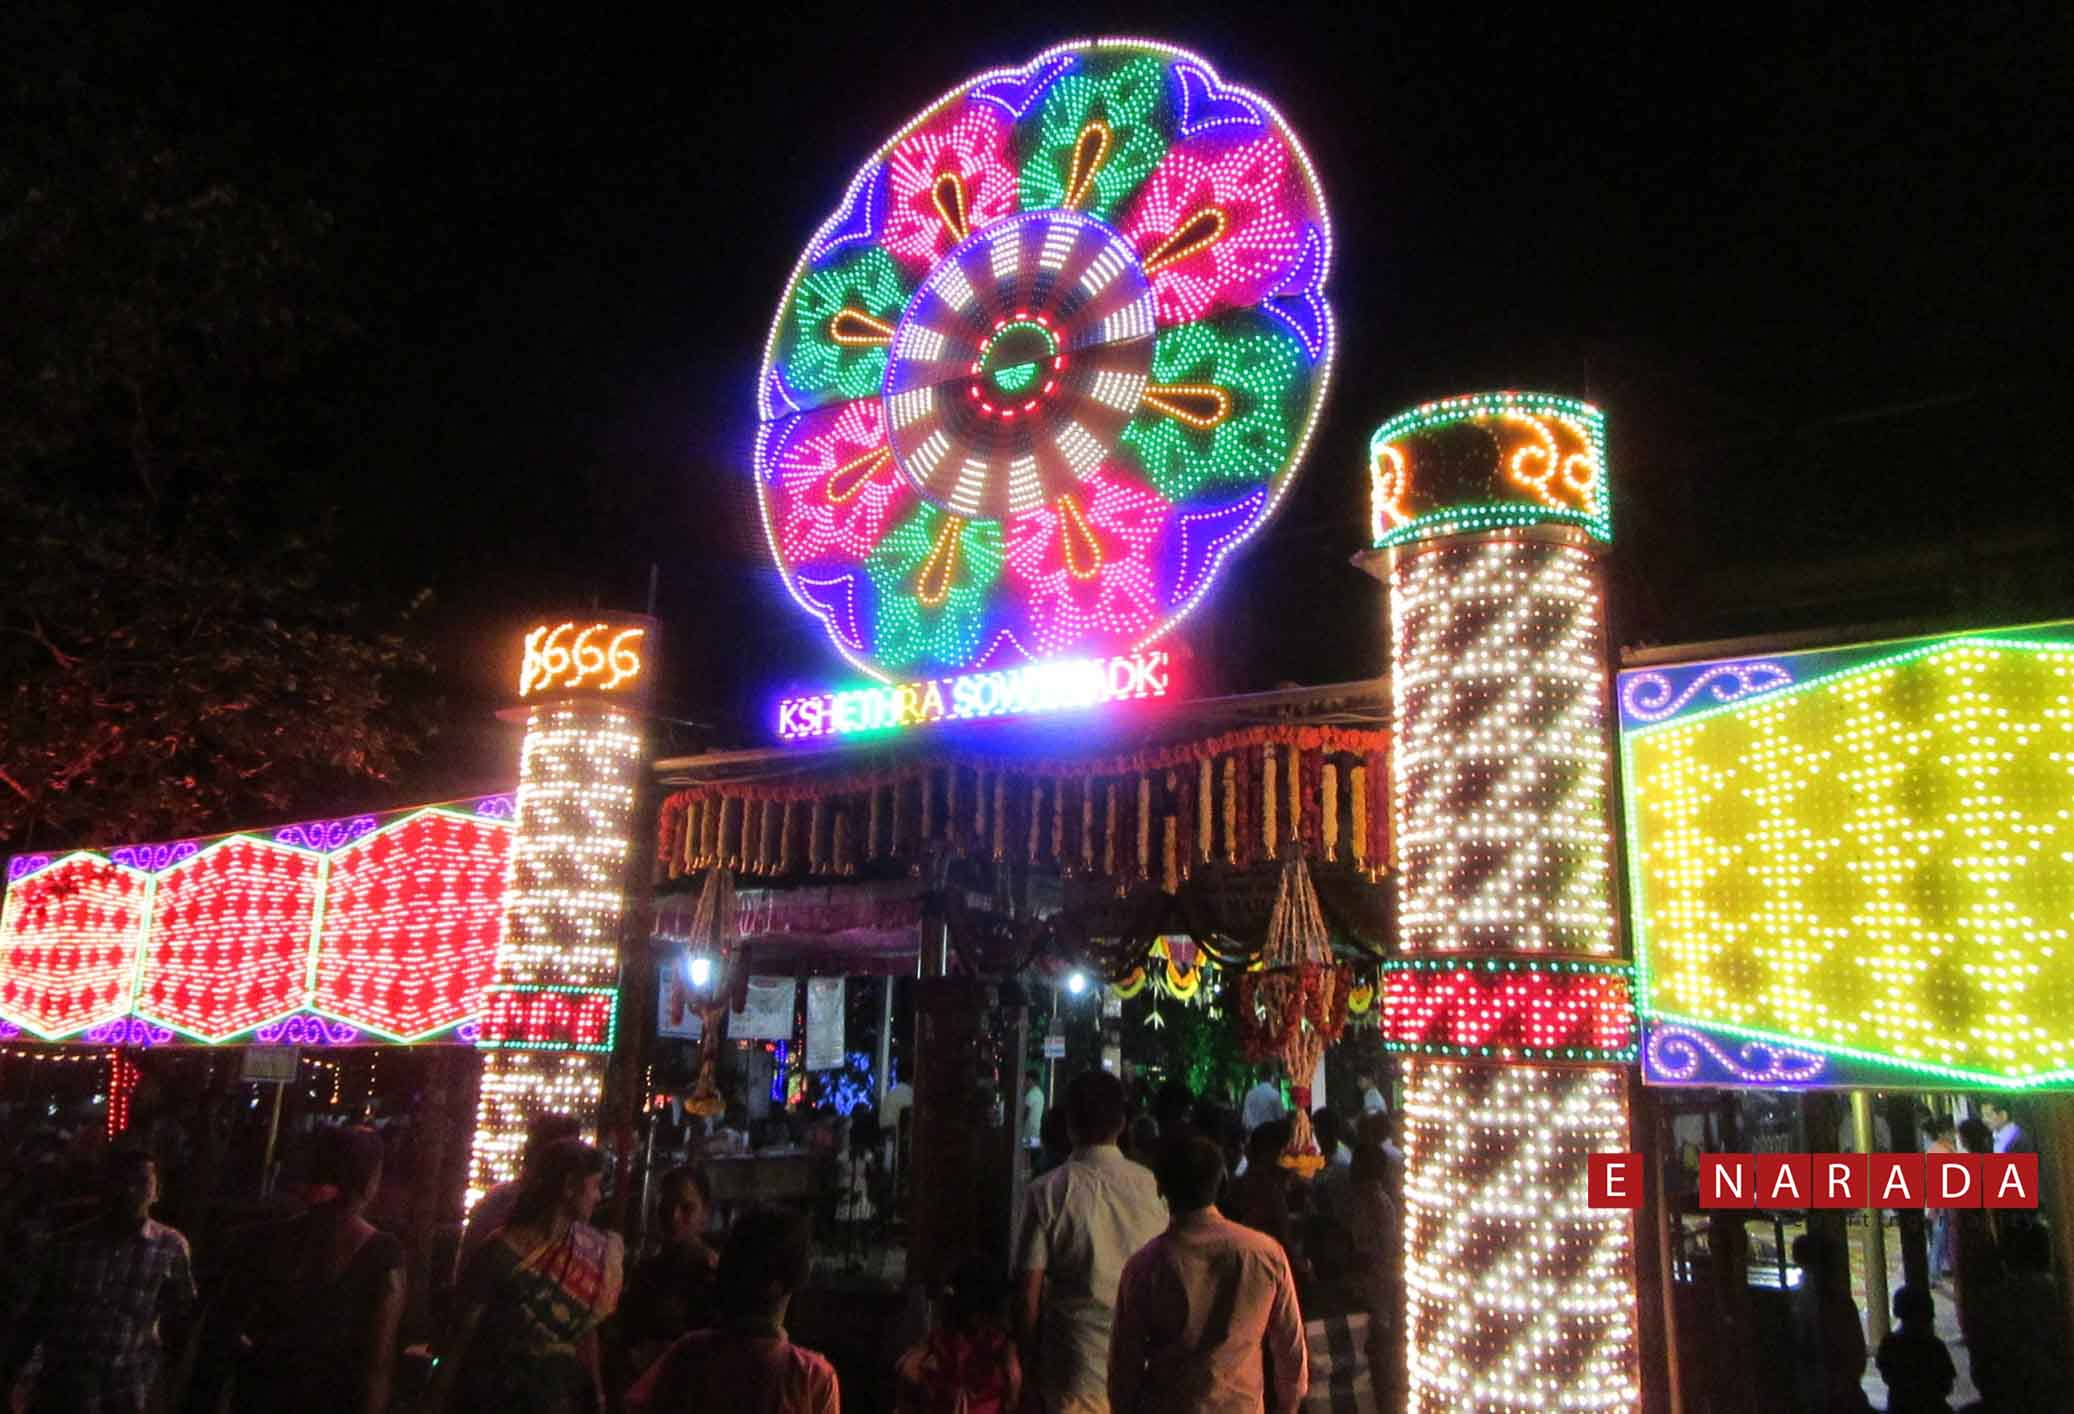 The Sowthadka temple wears a festive look with decorative lighting